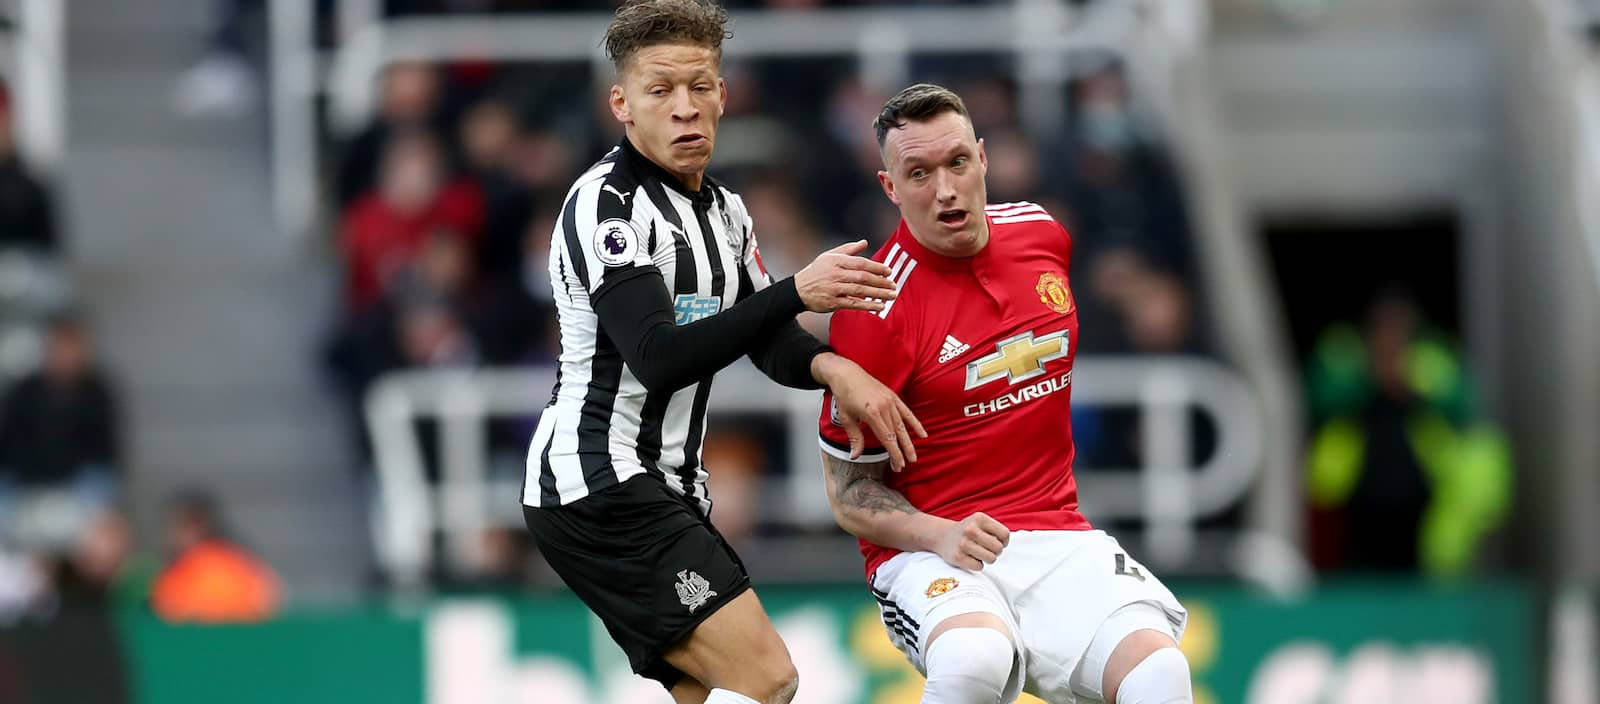 Newcastle United defeat once again highlights Manchester United's lack of evolution at the back